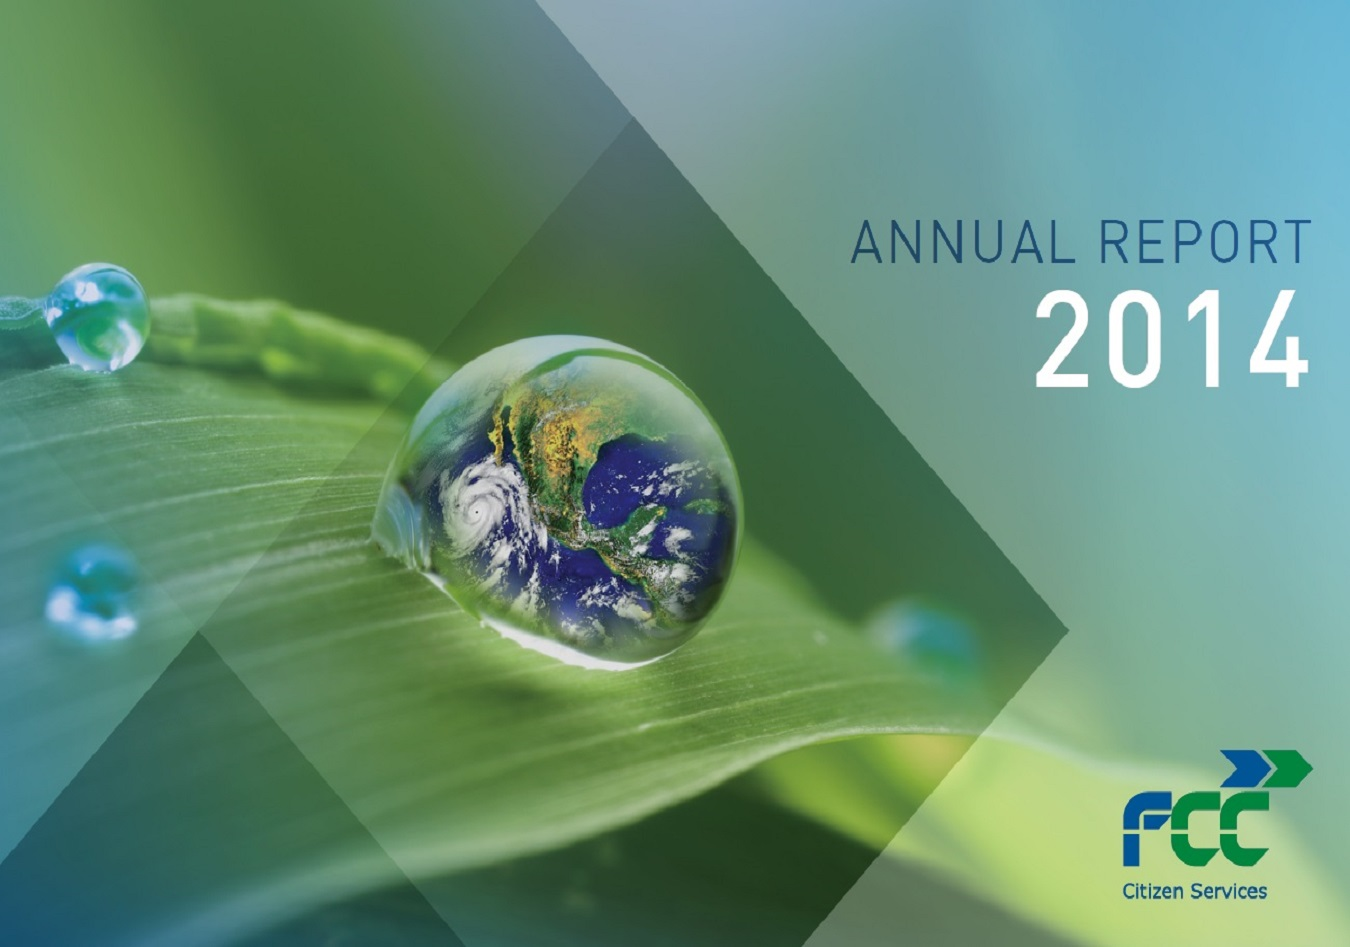 Complete Annual Report